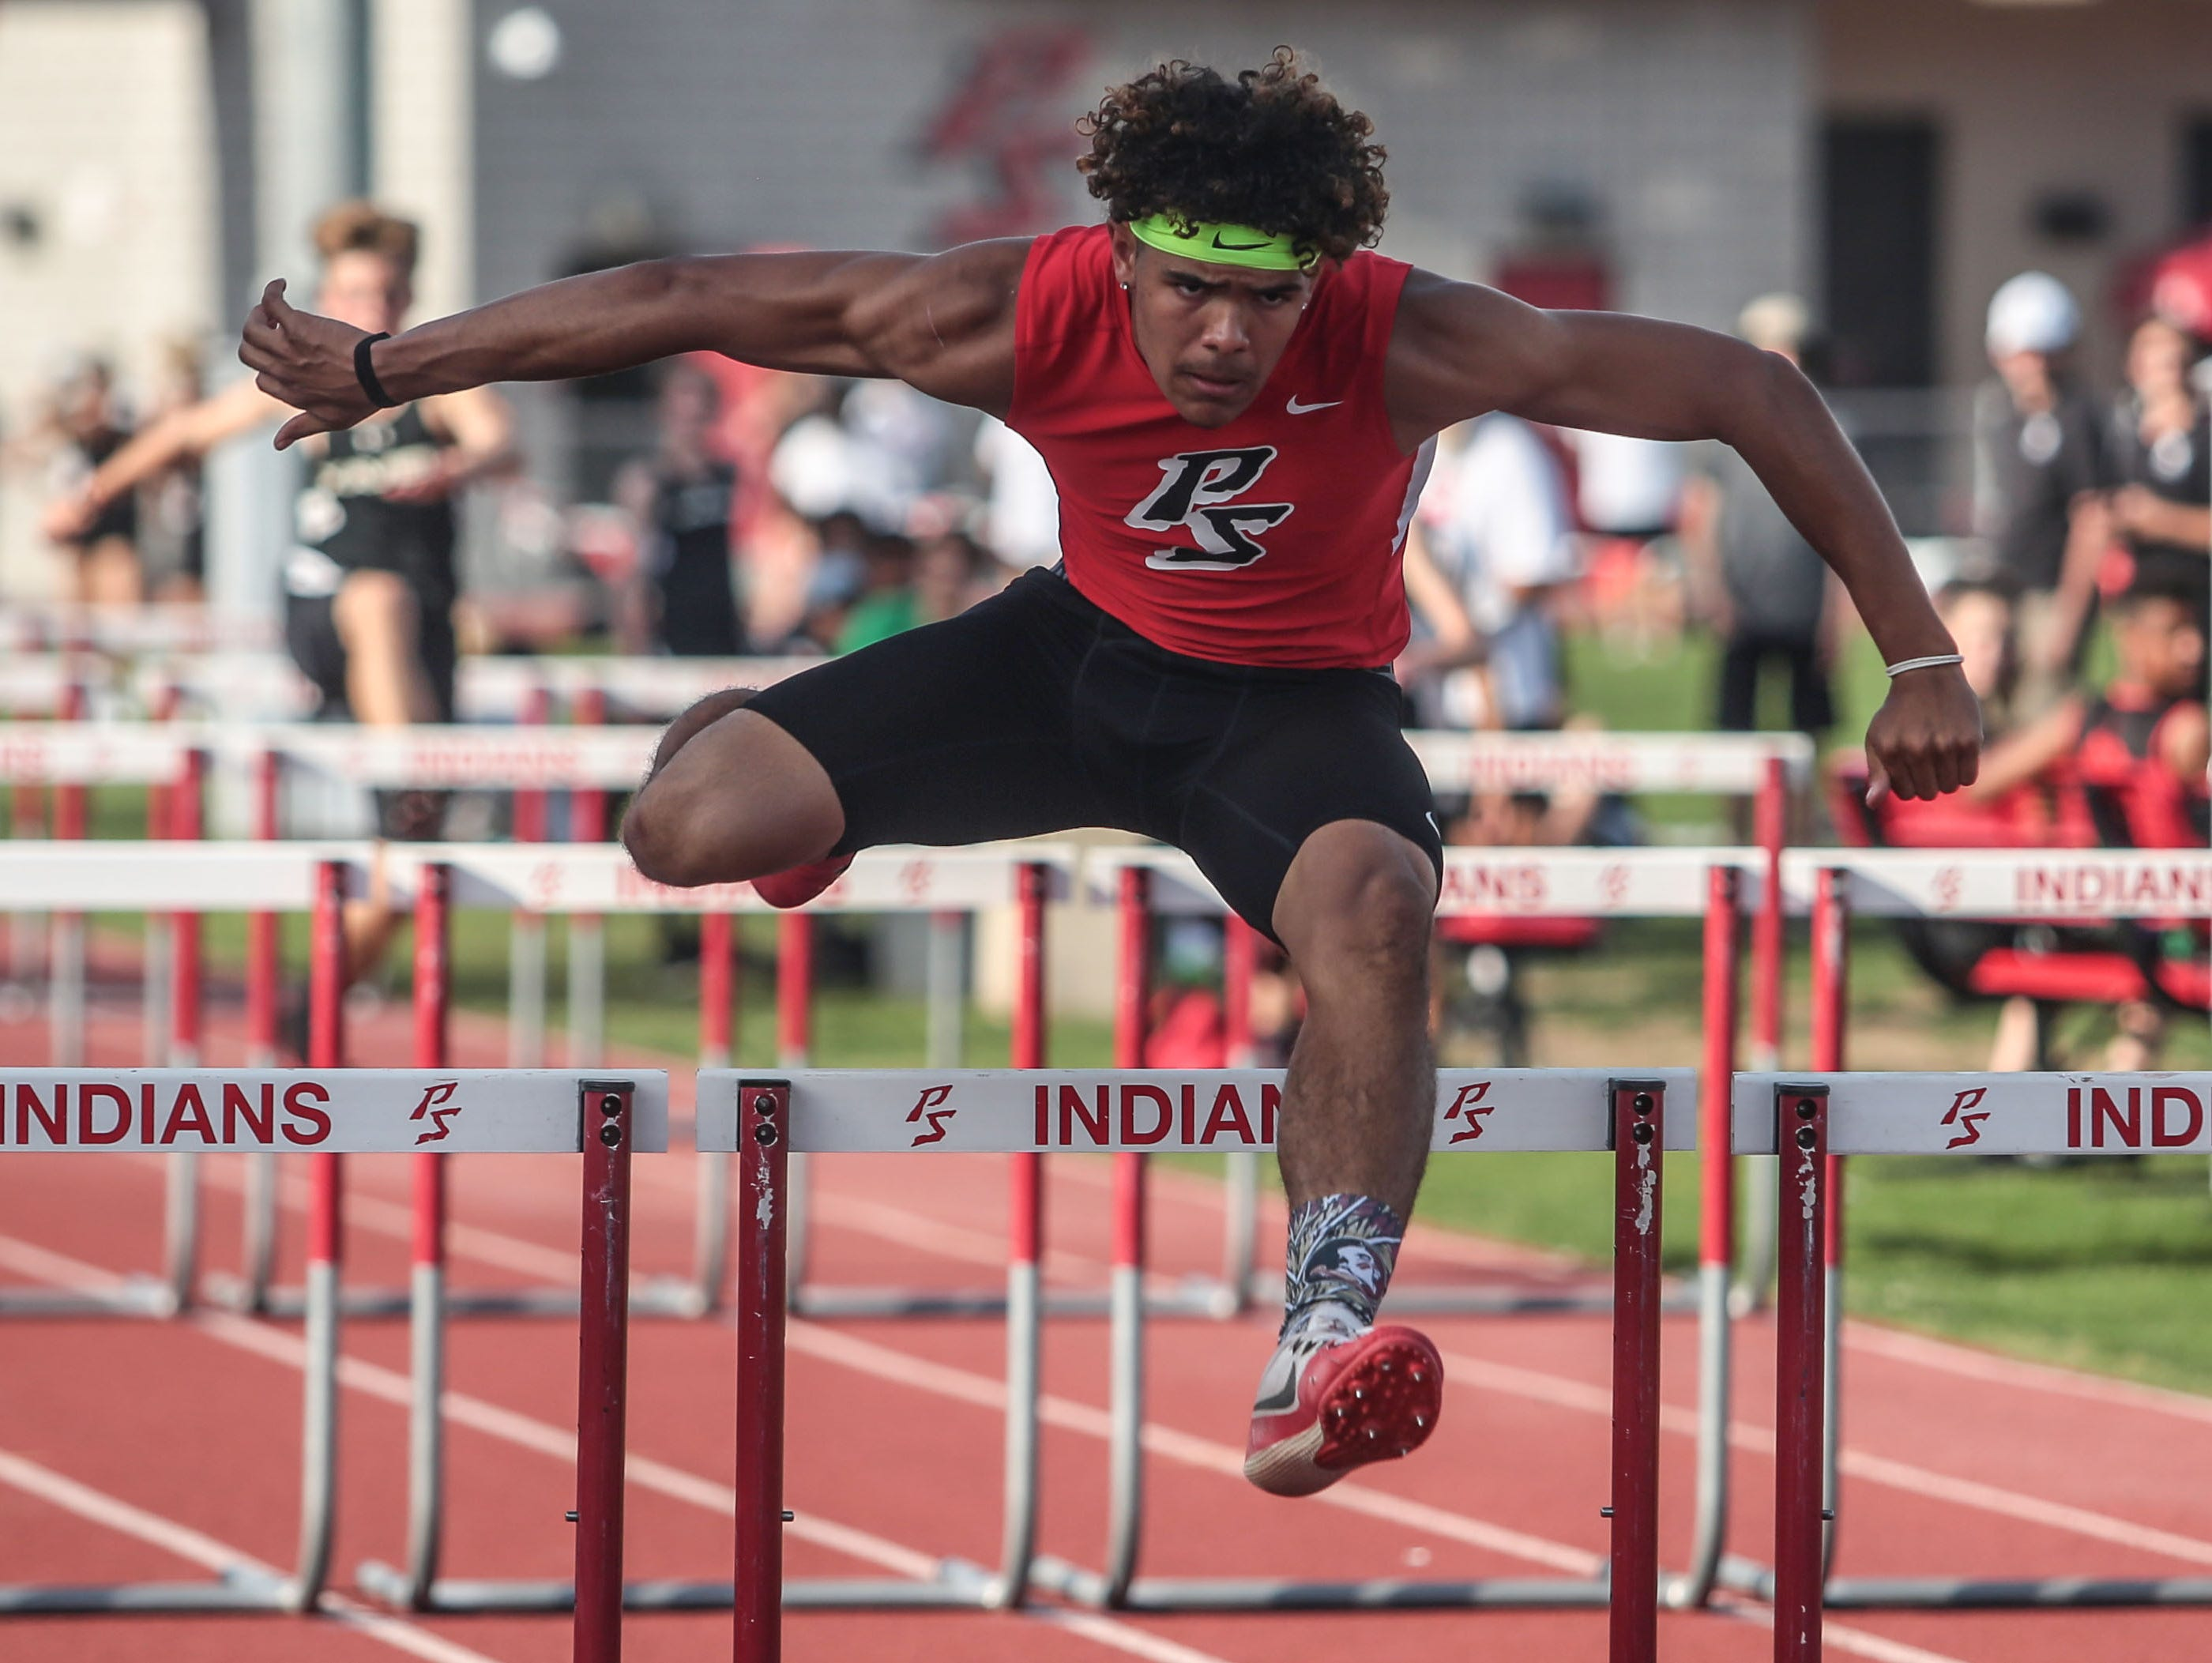 Palm Springs' sophomore Andrew Clark is first in the 100m hurdles during a track meet with Xavier College Prep on Thursday, March 16, 2017 in Palm Springs.